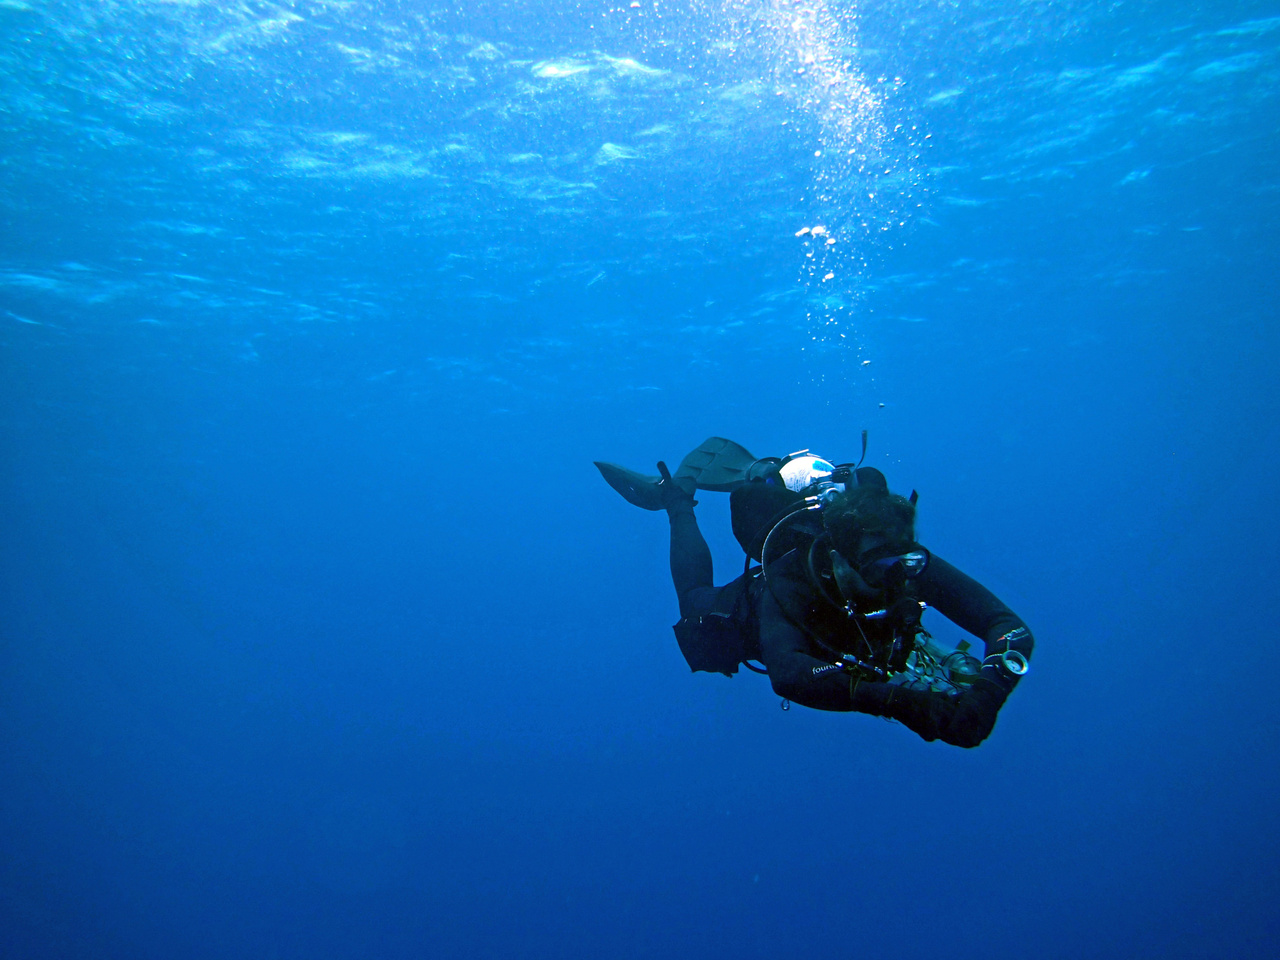 A scientist checks his dive computer on his safety stop while diving off the coast of Tutuila. After an hour or so on the reef conducting surveys, the scientists spend 3 minutes in about 15 feet of water so that they can off-gas. (Photo: NOAA Fisheries/Evan Barba)